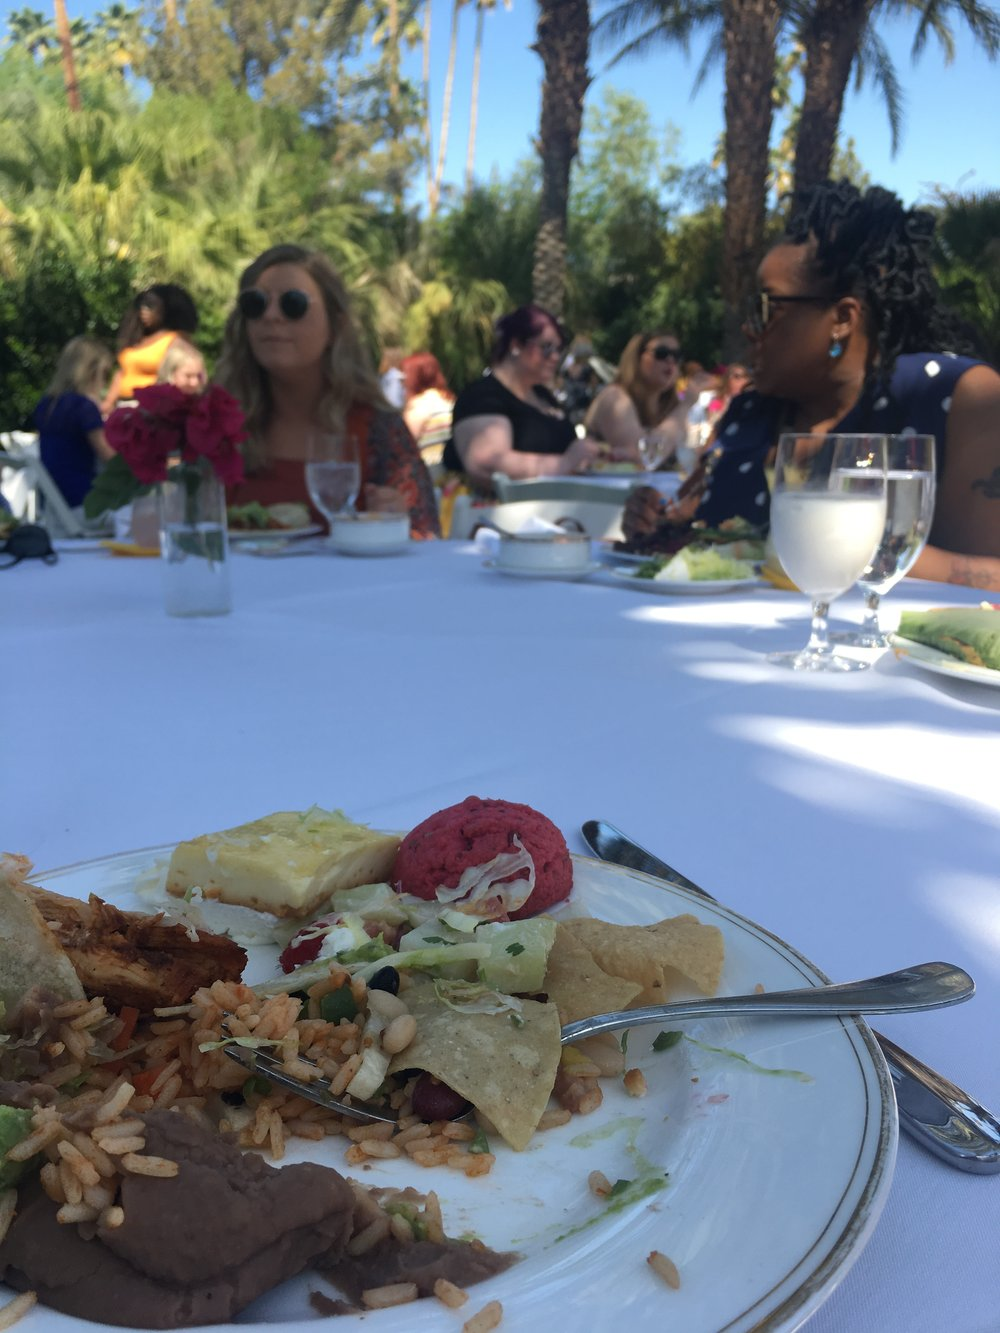 Lunch at The Parker, Alt Oasis, Palm Springs